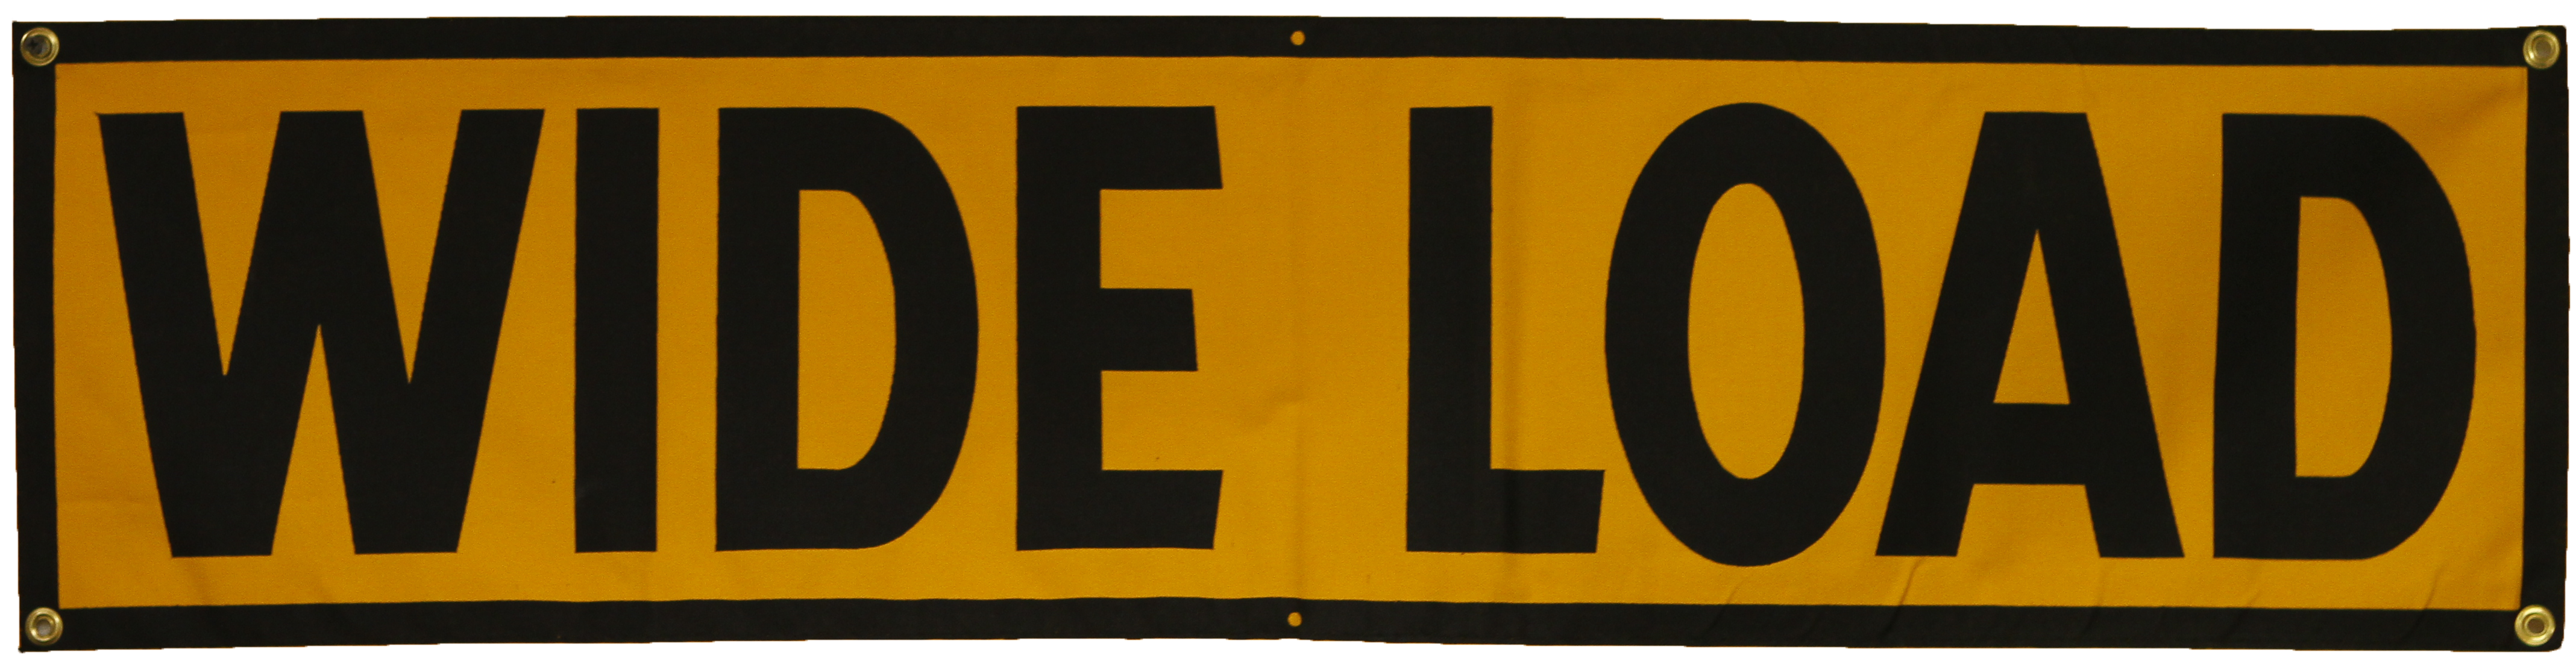 Wide Load Sign >> Oversize Load Signs The Warning Sign Company